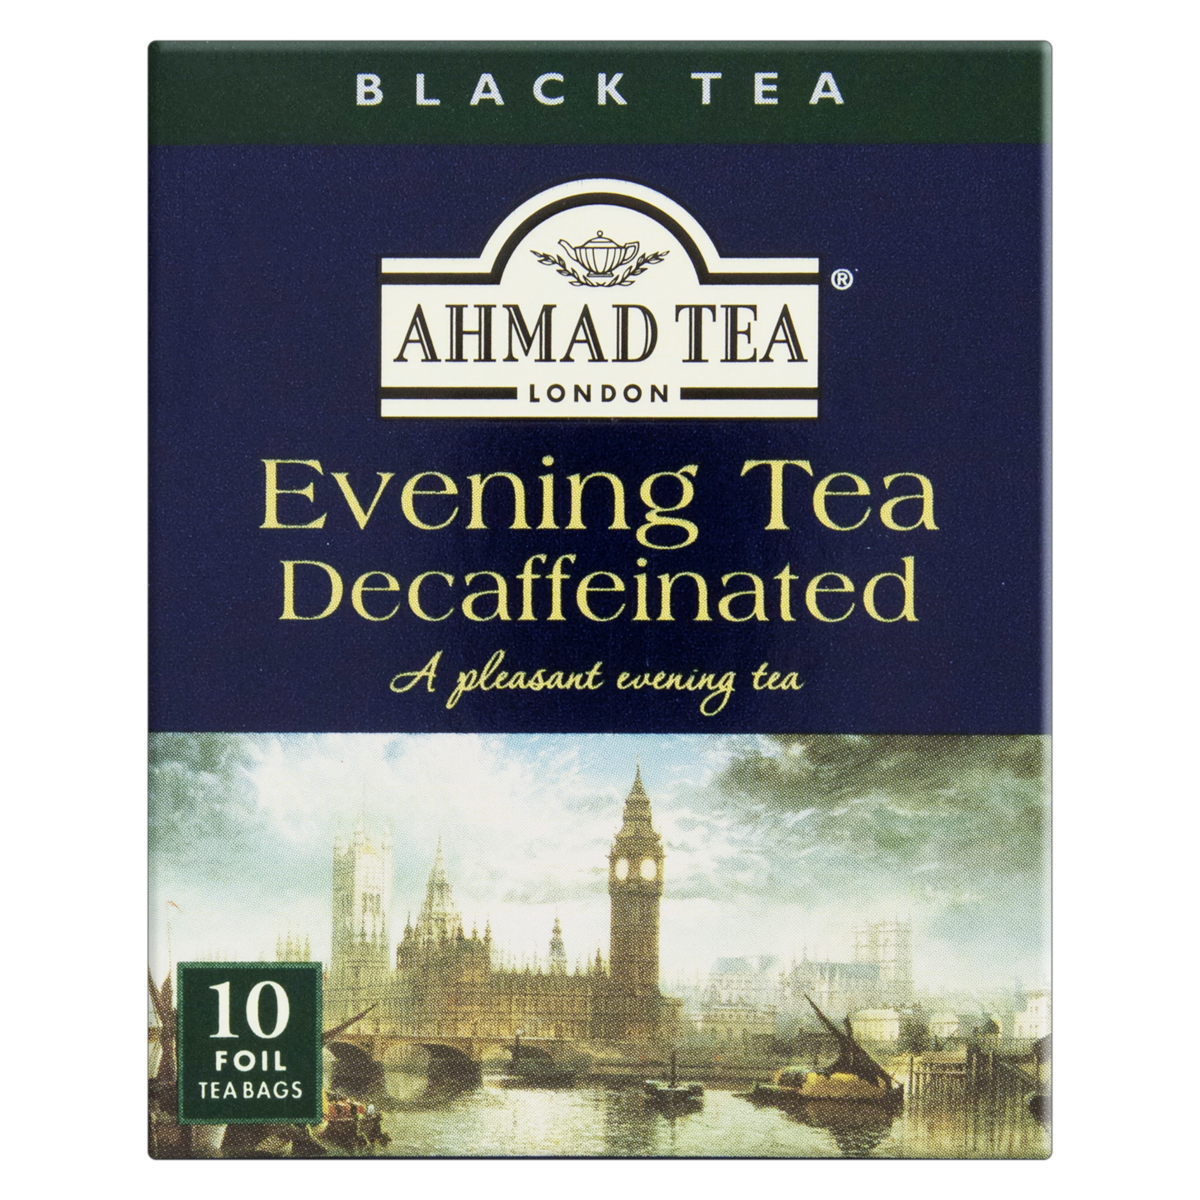 0054881013543 - CHÁ PRETO EVENING TEA DECAFFEINATED AHMAD TEA LONDON CAIXA 20G 10 UNIDADES